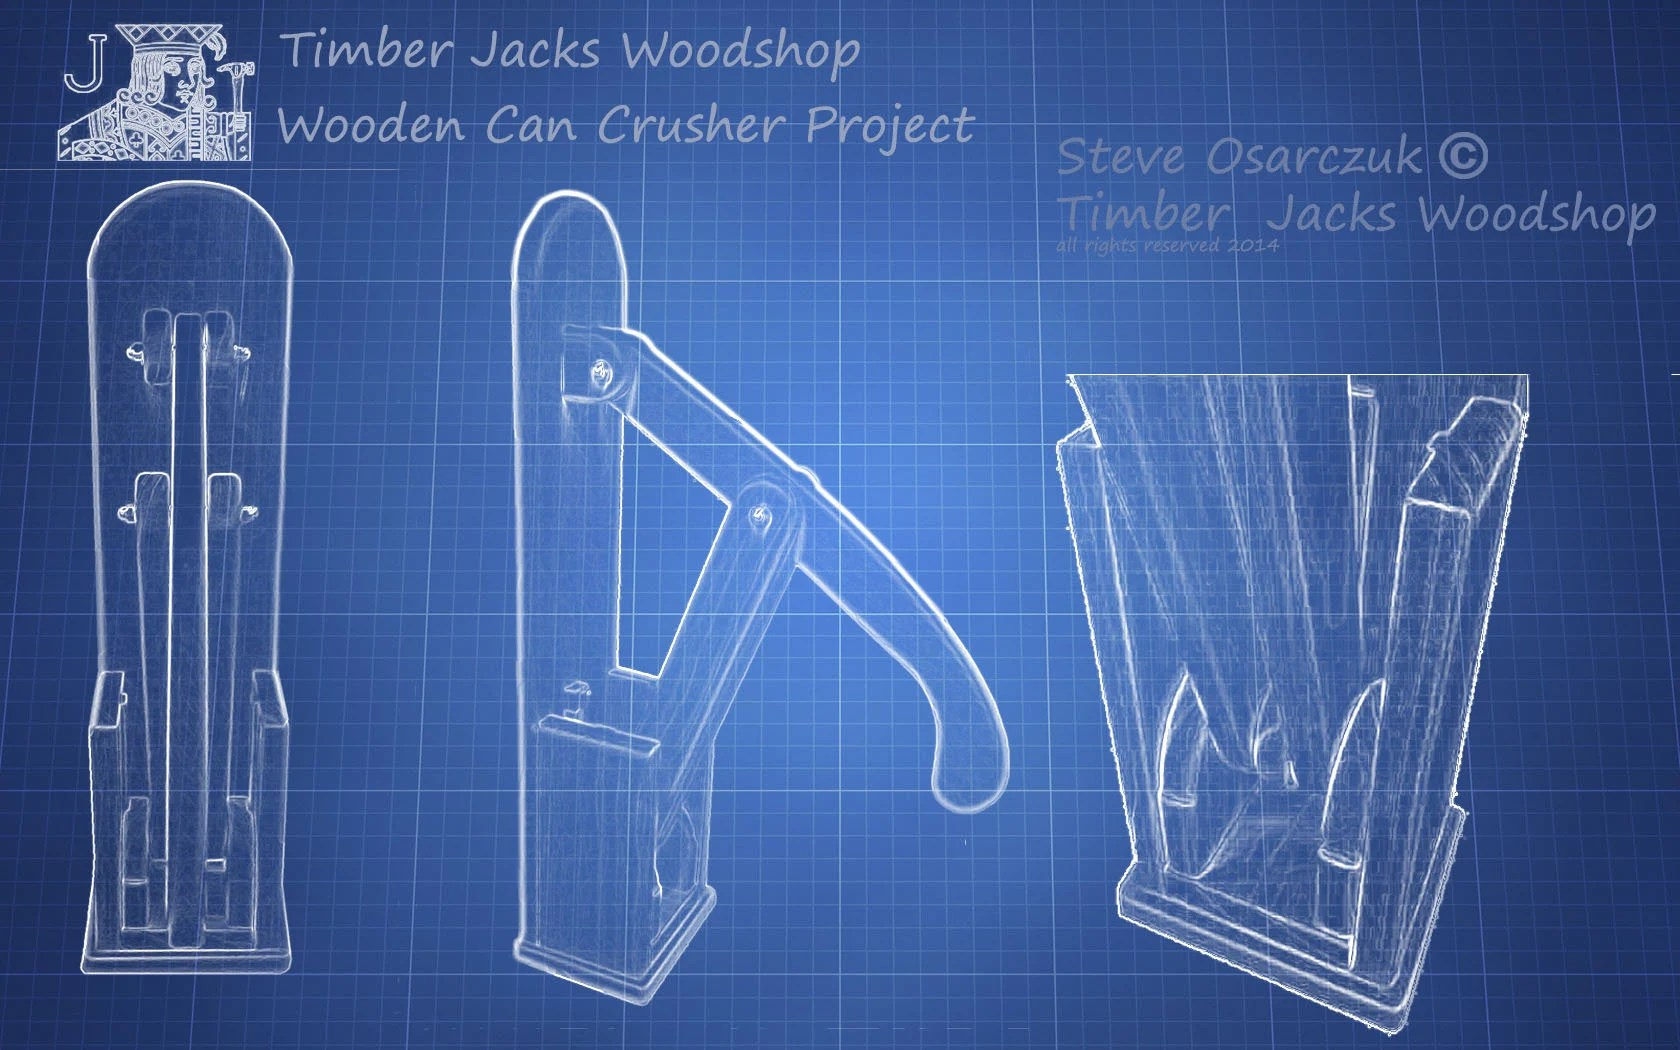 Wooden Can Crusher Plans